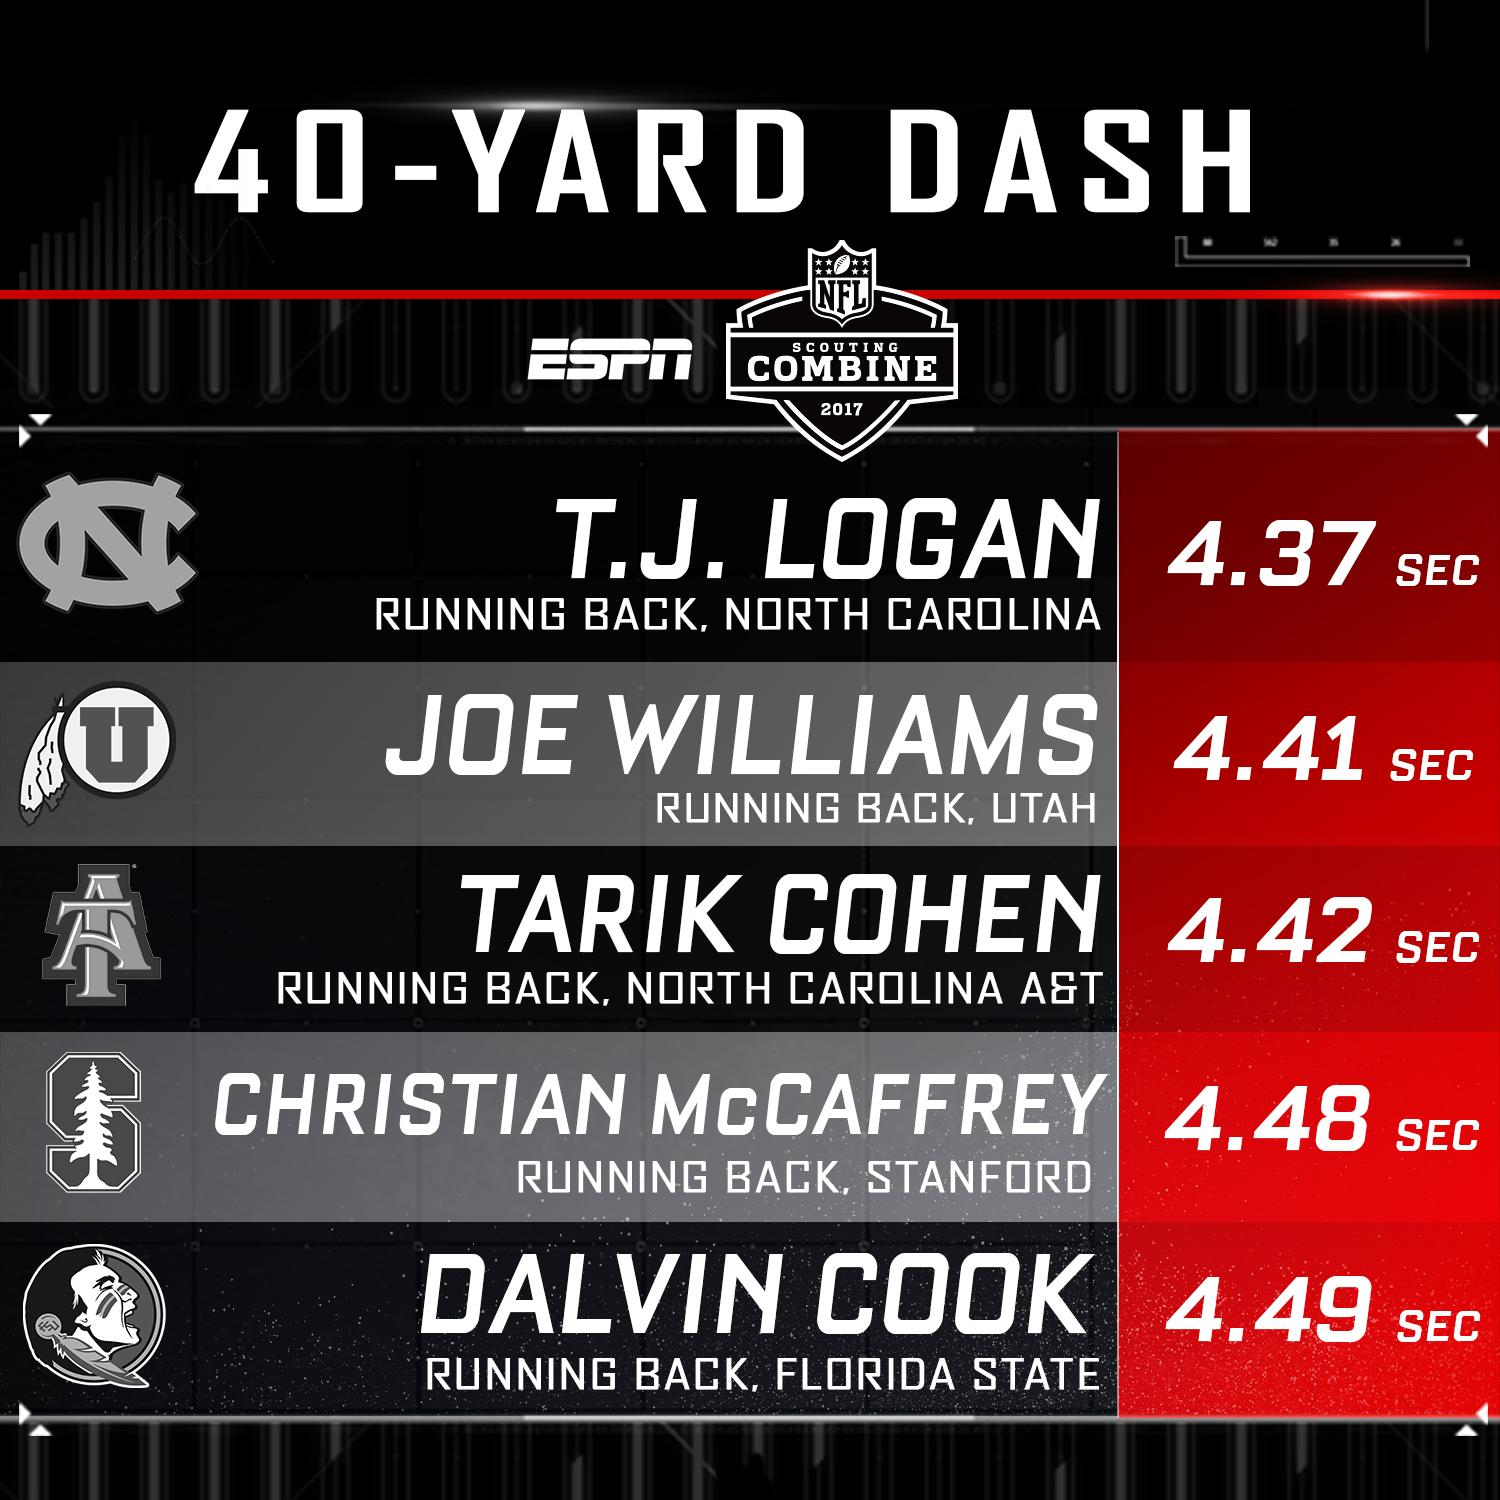 Christian McCaffrey and Dalvin Cook with some of the top RB times in the 40-yard dash. (via @ESPNNFL) https://t.co/8IaejlfTxP